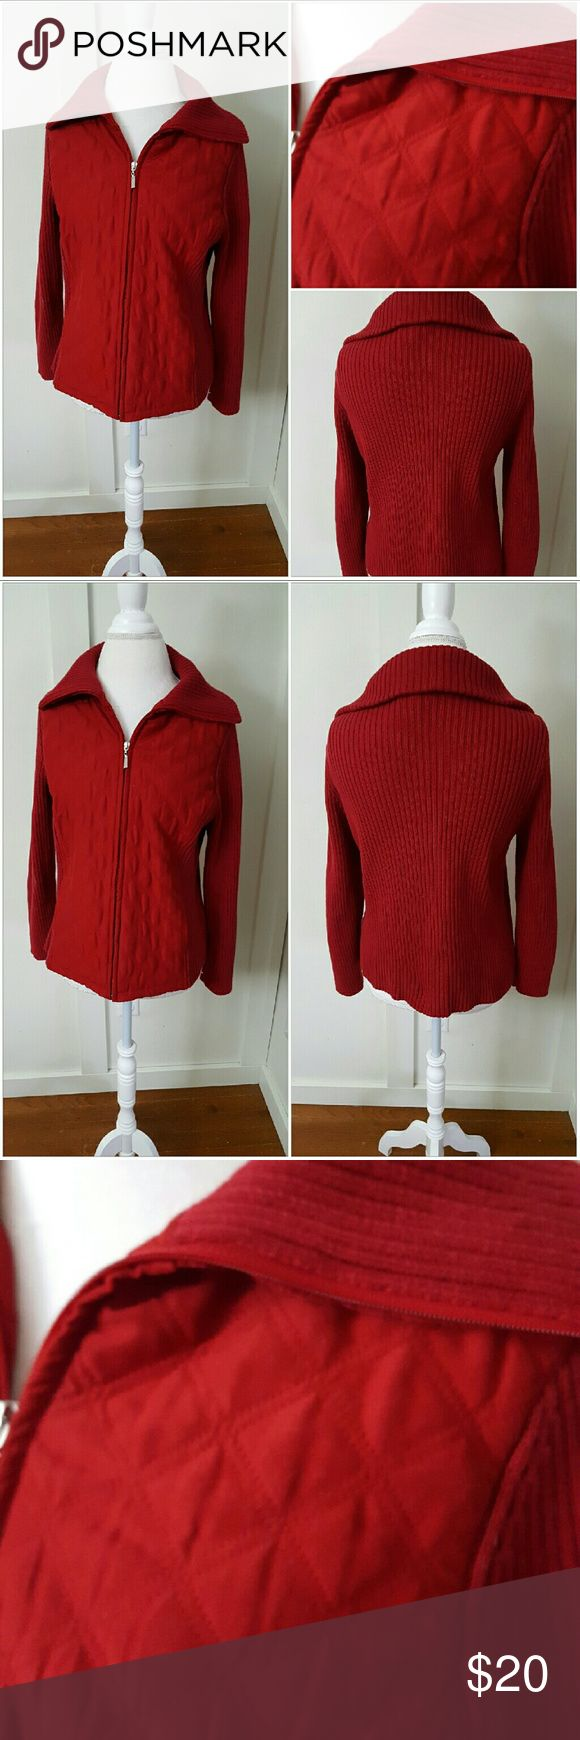 Croft and Barrow Petite Medium Red Quilted Sweater Croft and Barrow PM red quilted sweater jacket. Zip up. Long sleeves. Pre-owned and in good condition. Knit body - 100% Cotton. Woven body - 100% Polyester. Filling 100% Polyester croft & barrow Sweaters